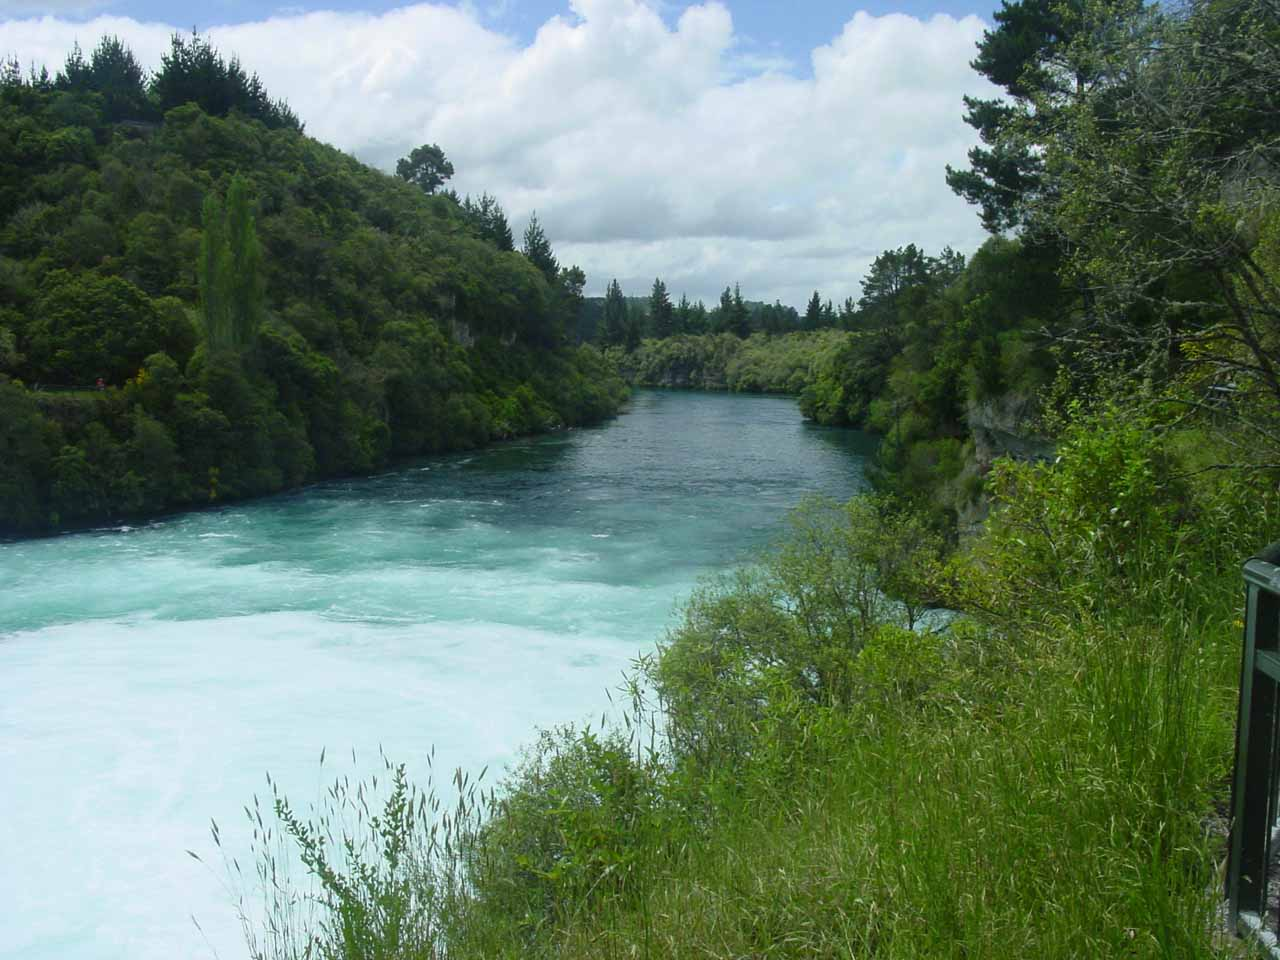 Looking downstream along the Waikato River